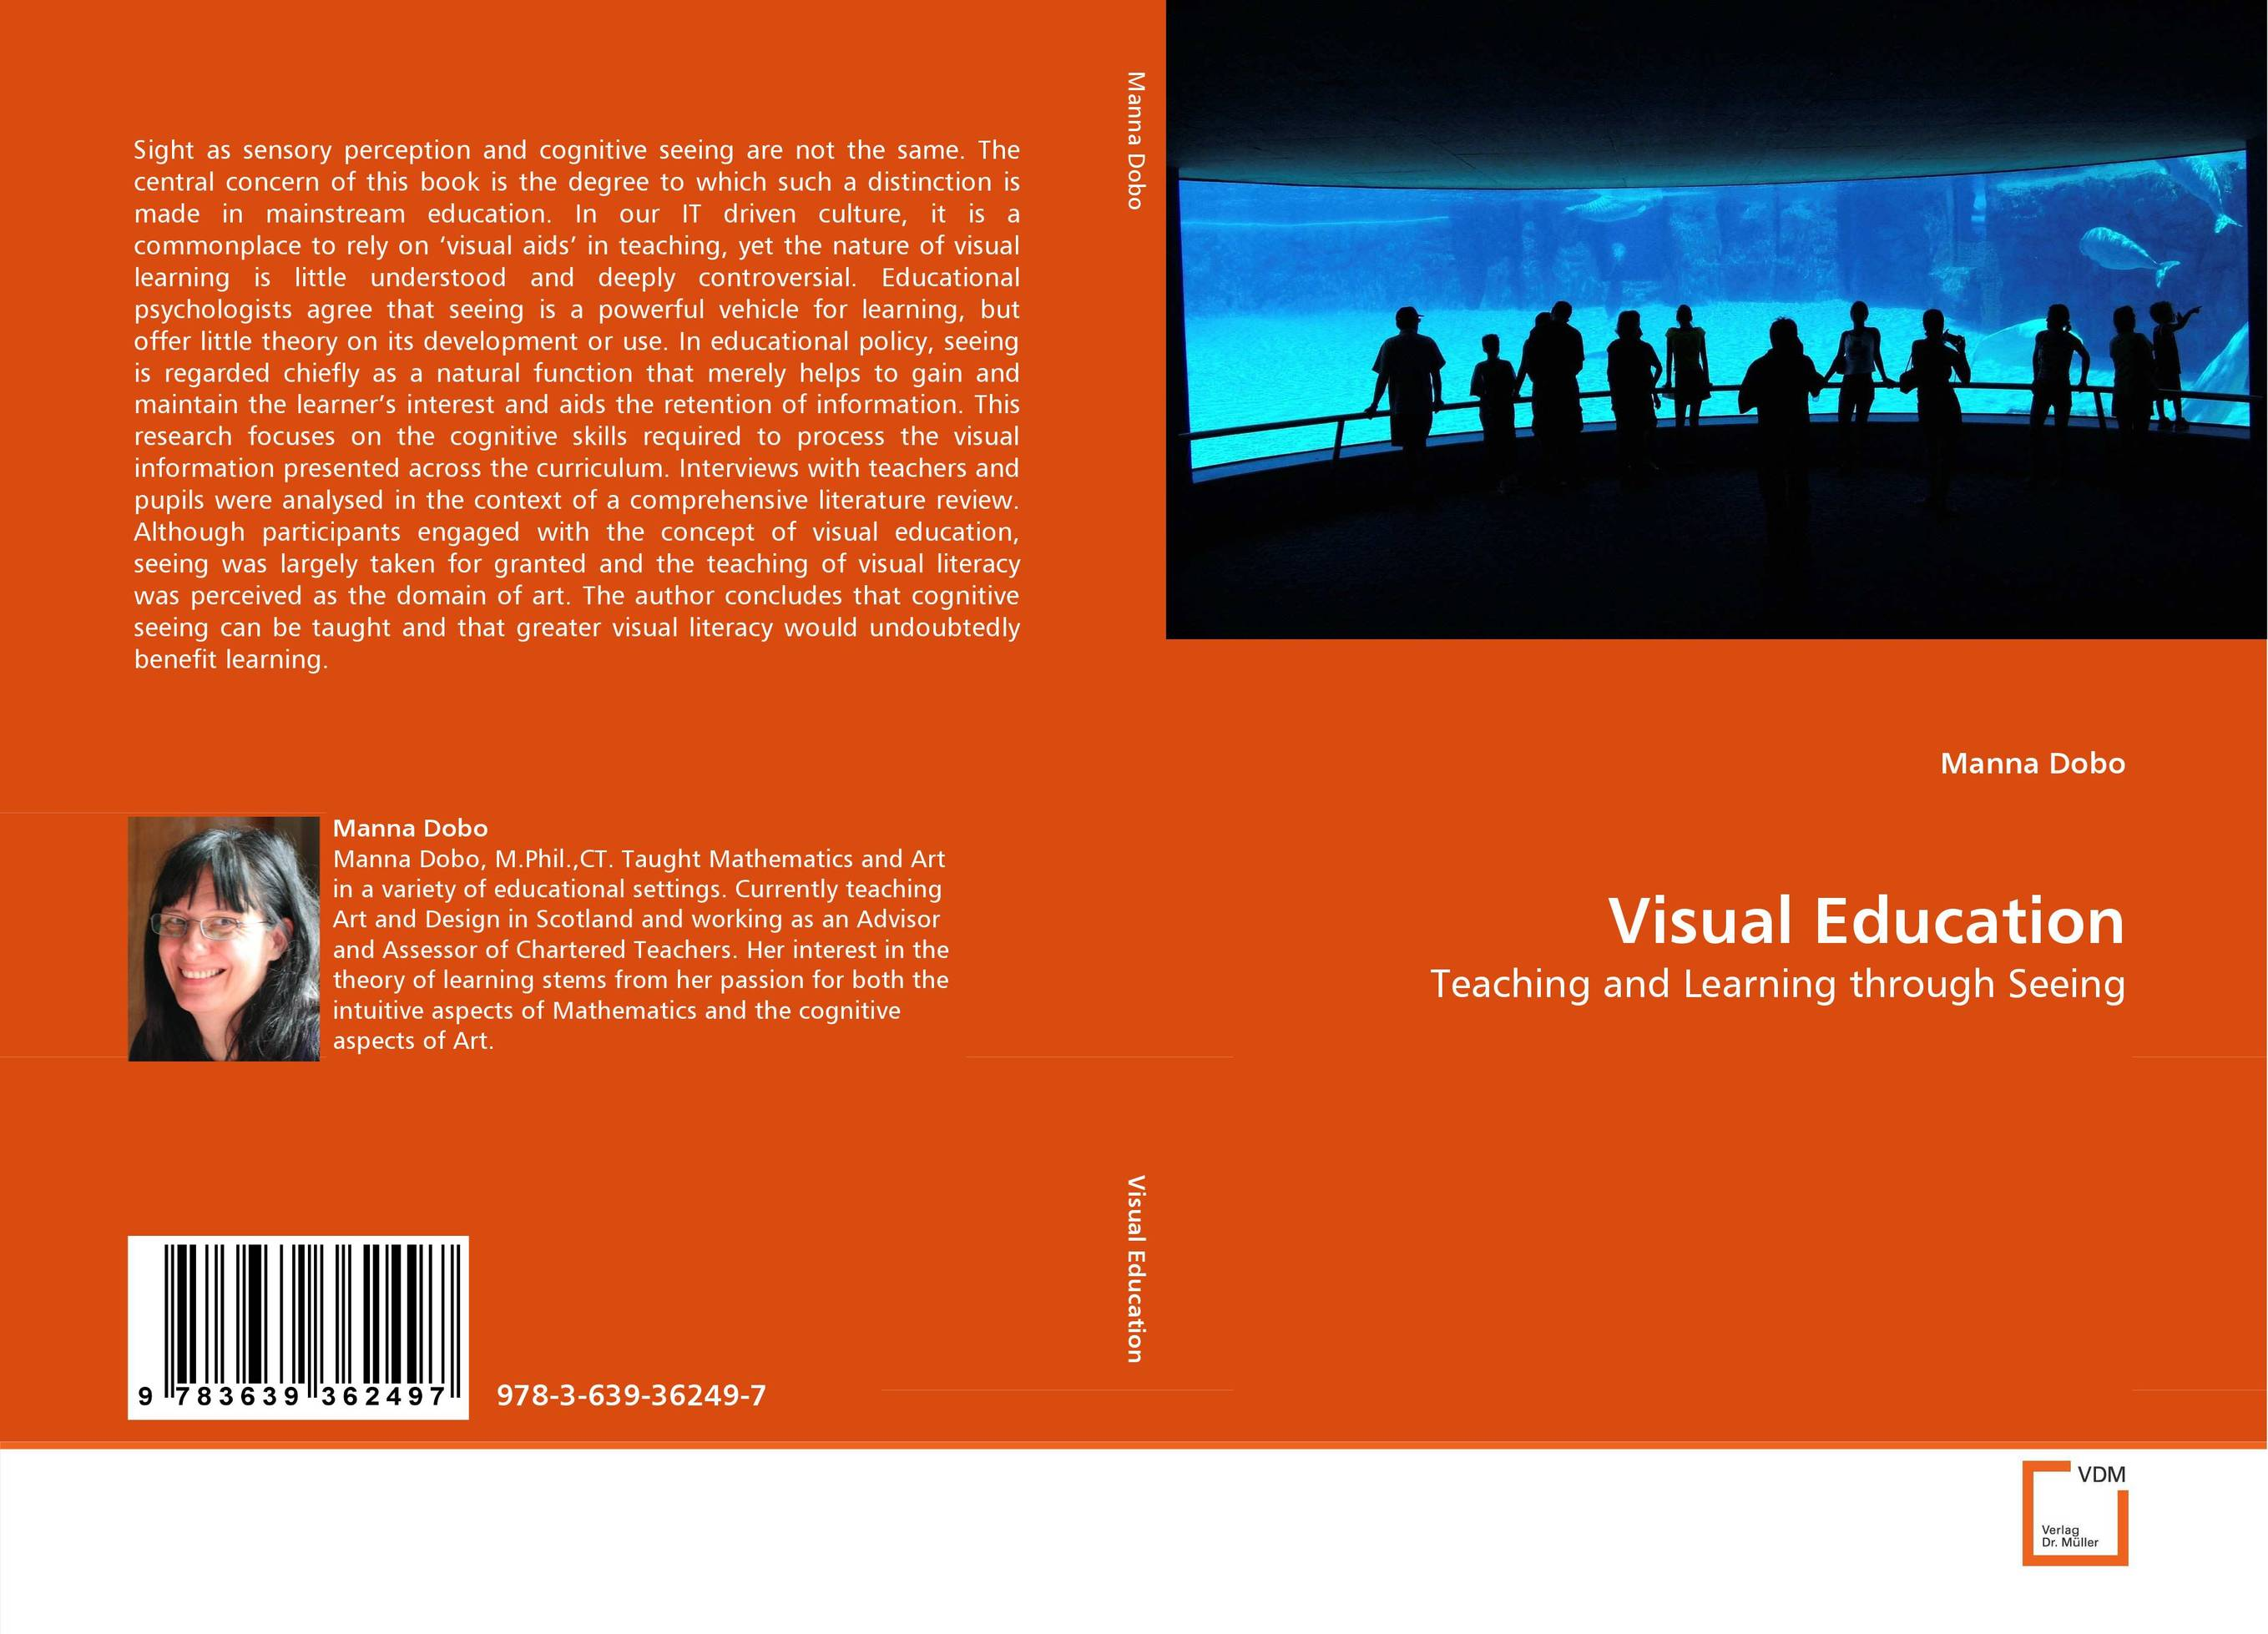 Visual Education seeing red